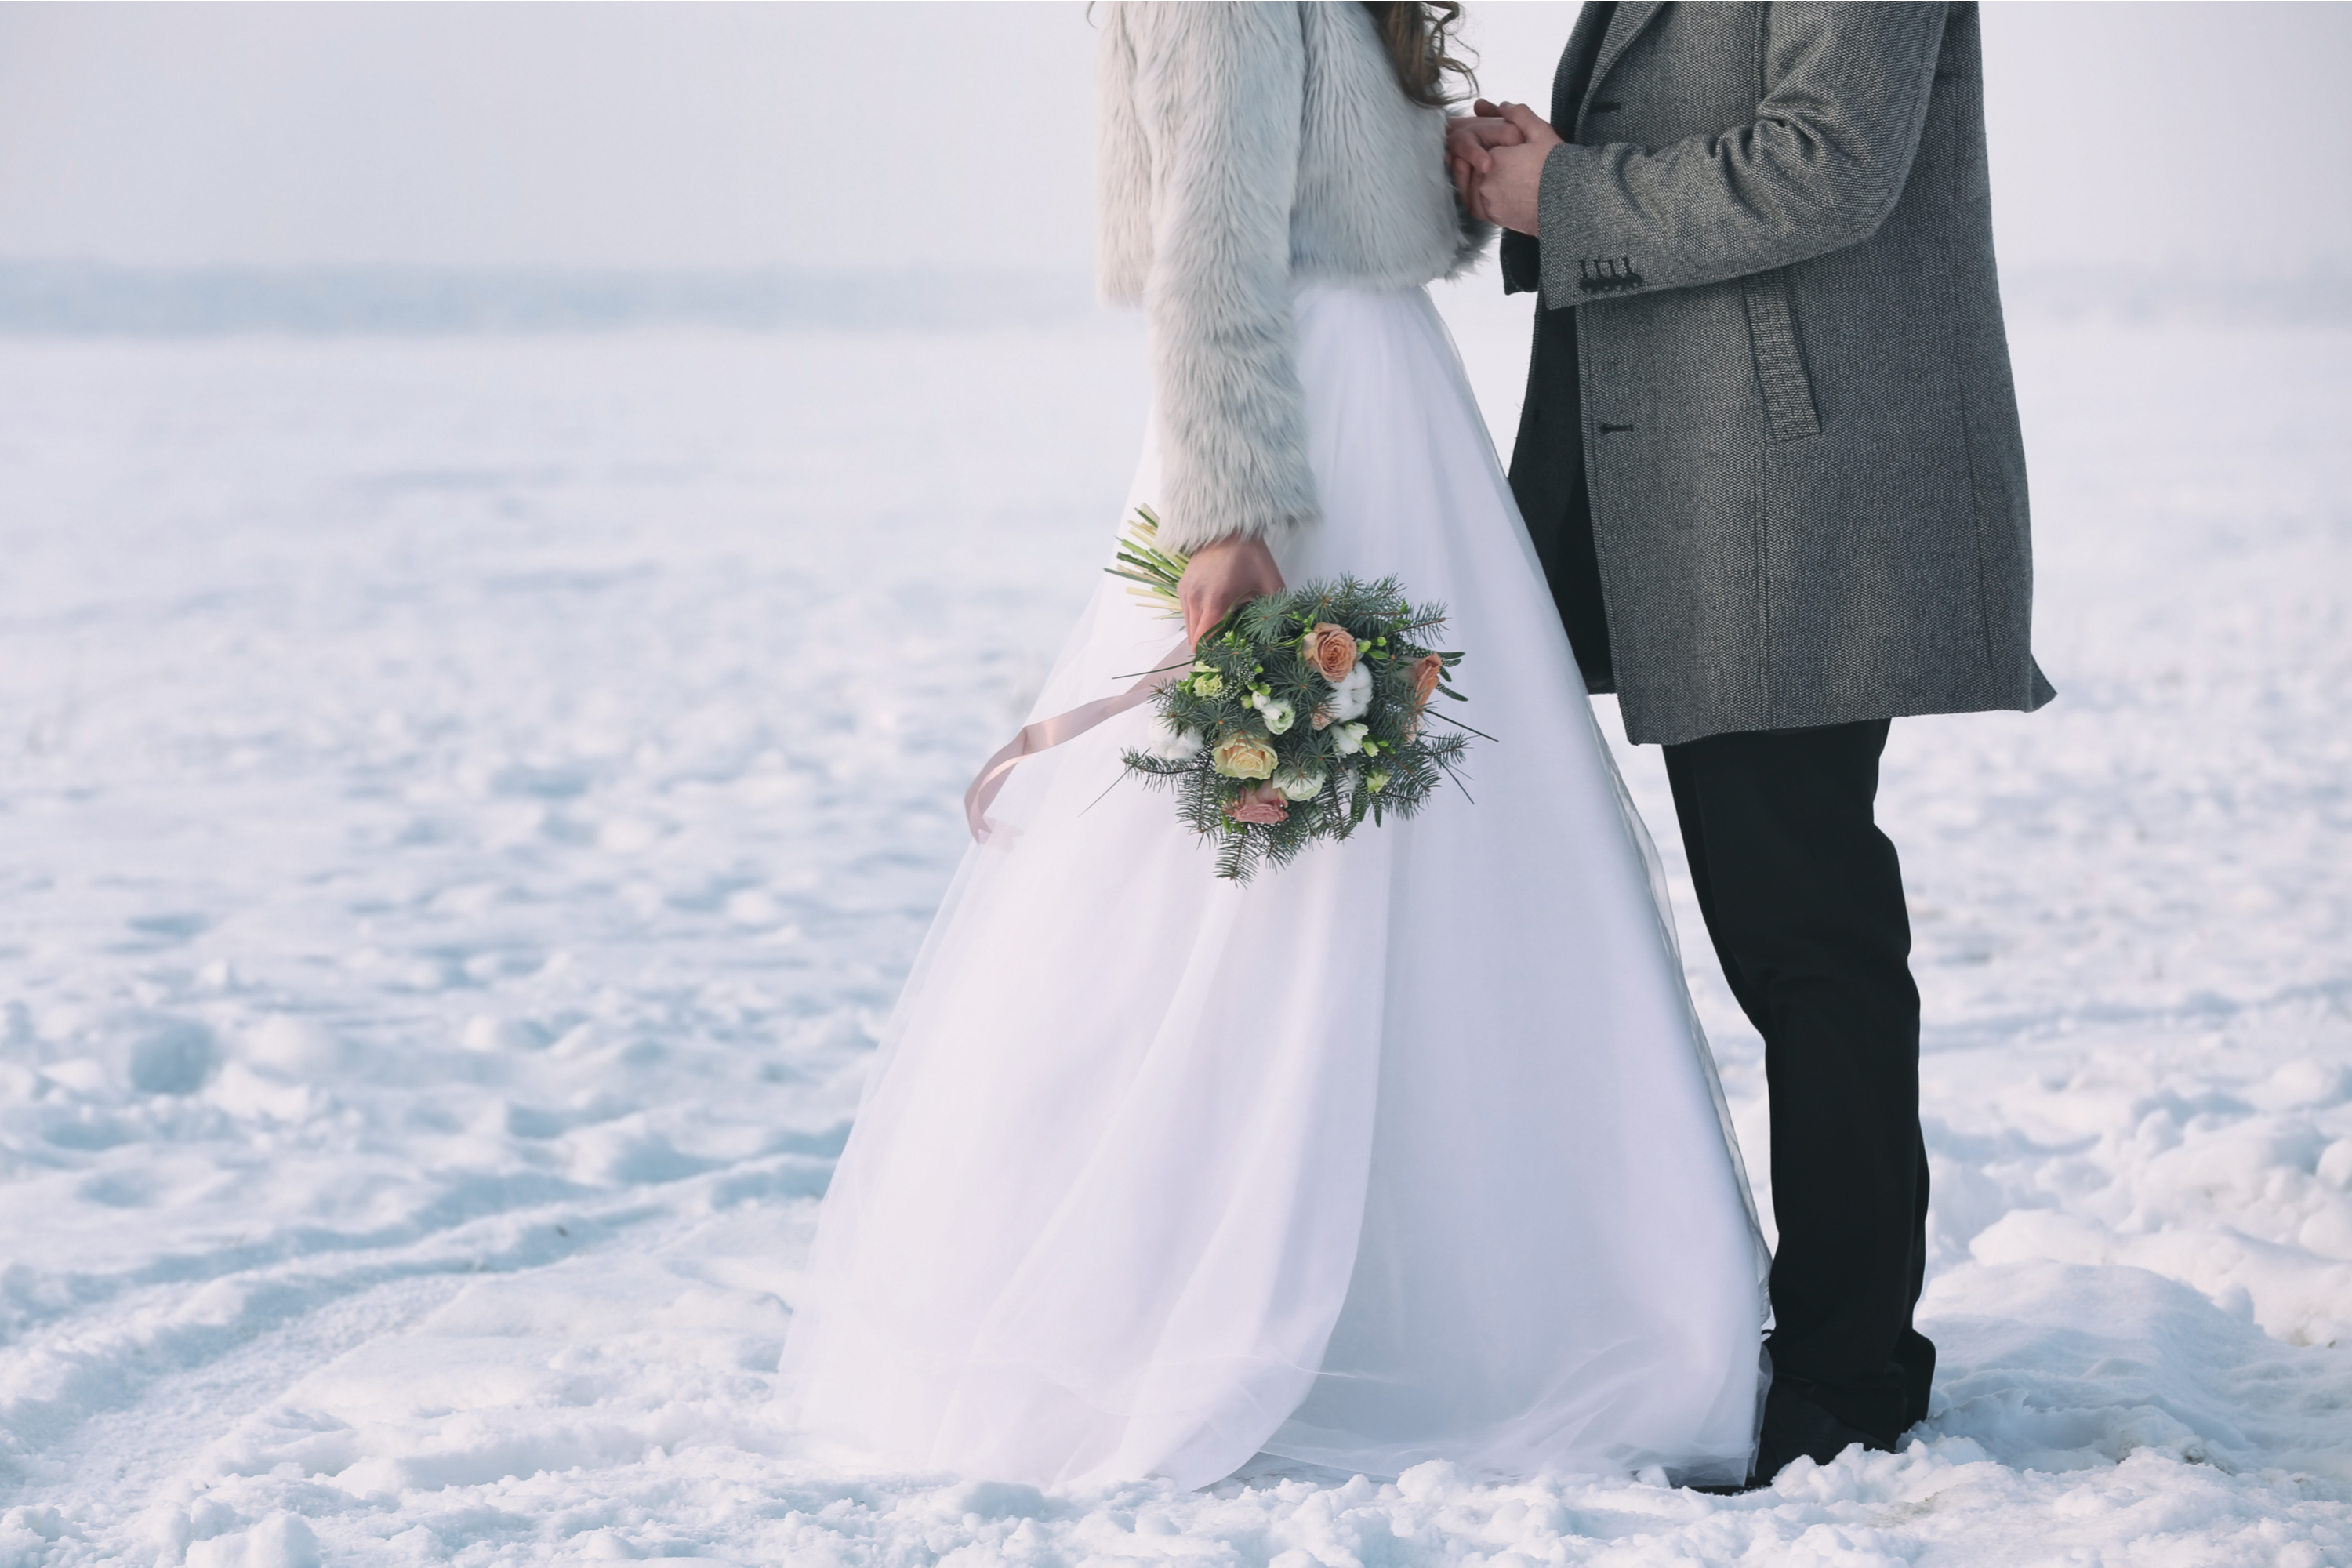 When you're planning a winter wedding, you want to make sure you have winter wedding favors for your guests. Check out these winter wedding favors your guests will love!